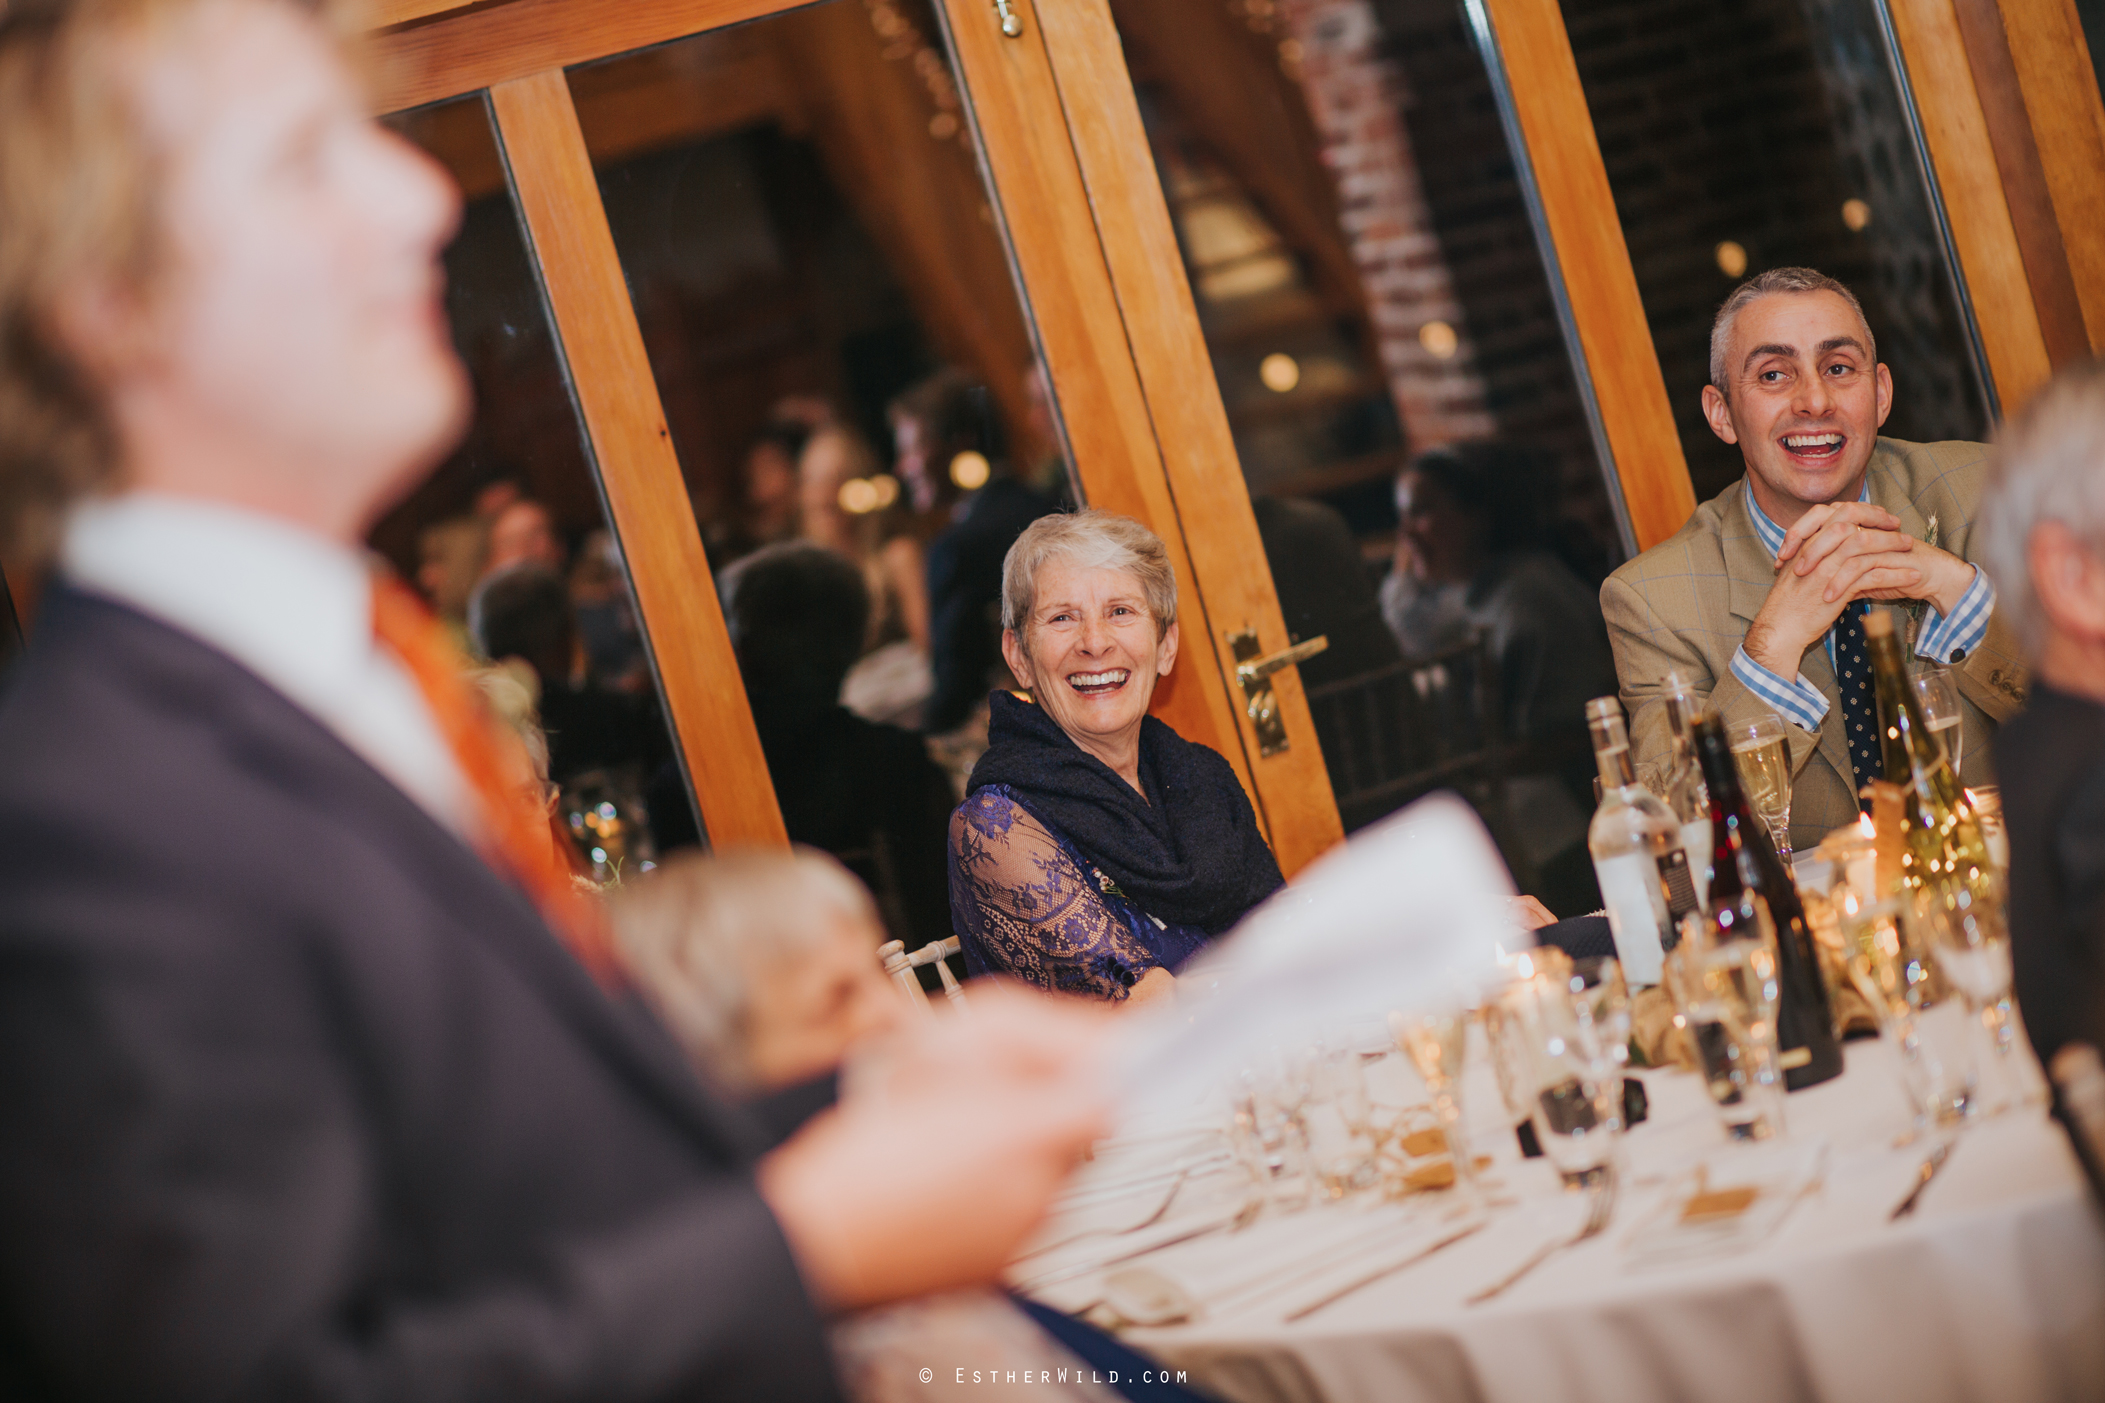 Wedding_Photographer_Chaucer_Barn_Holt_Norfolk_Country_Rustic_Venue_Copyright_Esther_Wild_IMG_1827_Z72A0850.jpg